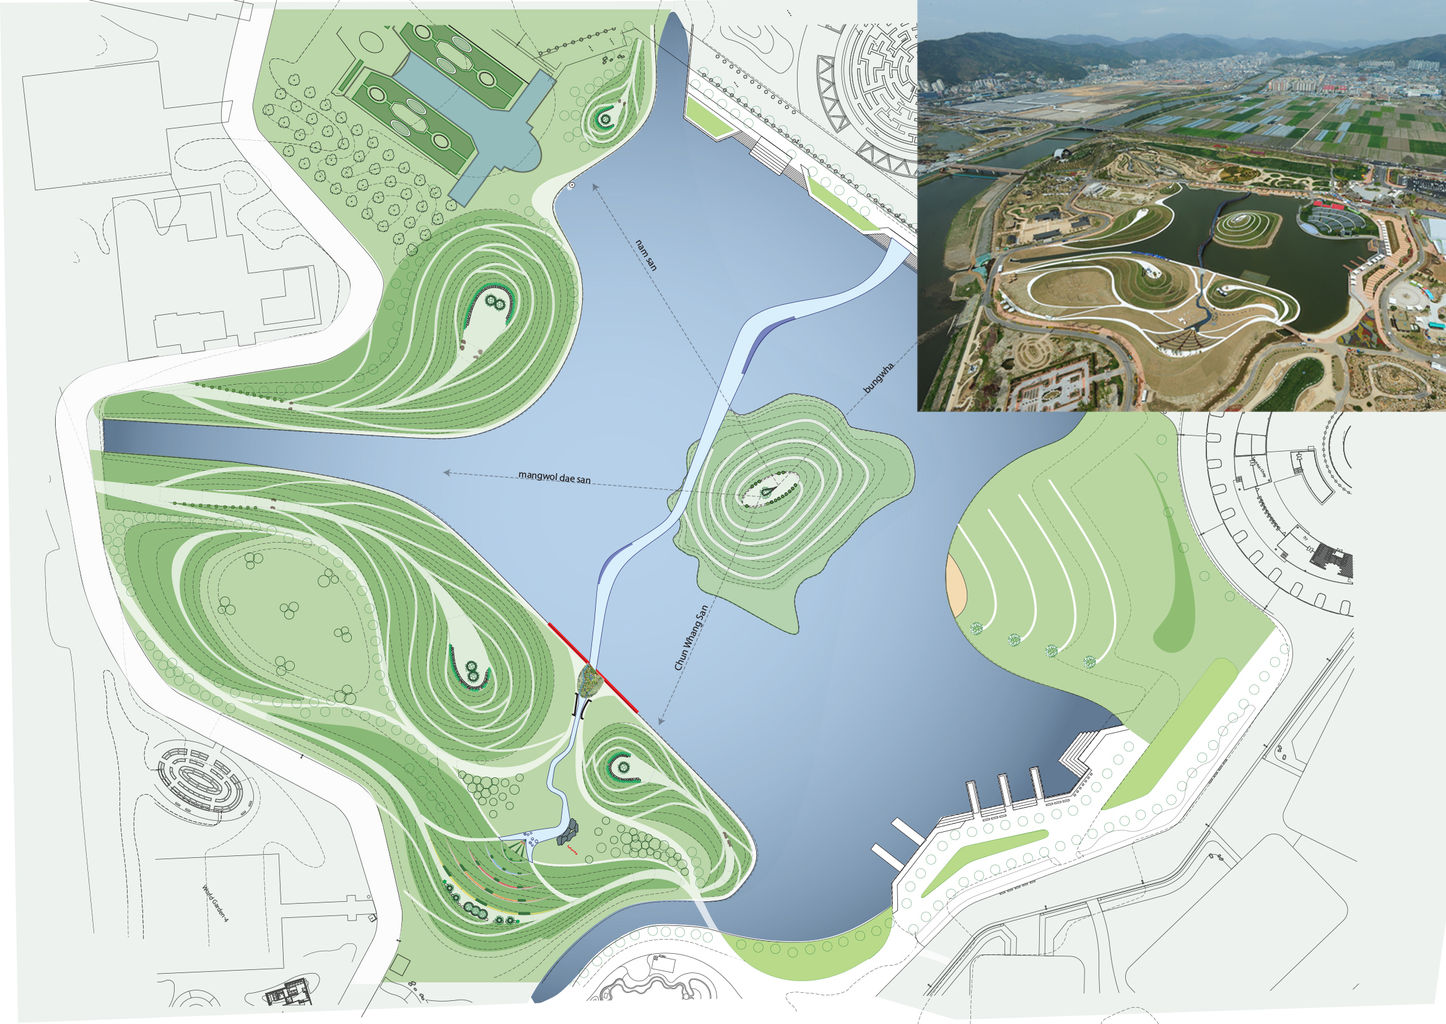 Site plan showing six mounds  'miniaturising the adjacent mountains' and the 'city as a lake' with the 'river as a bridge'